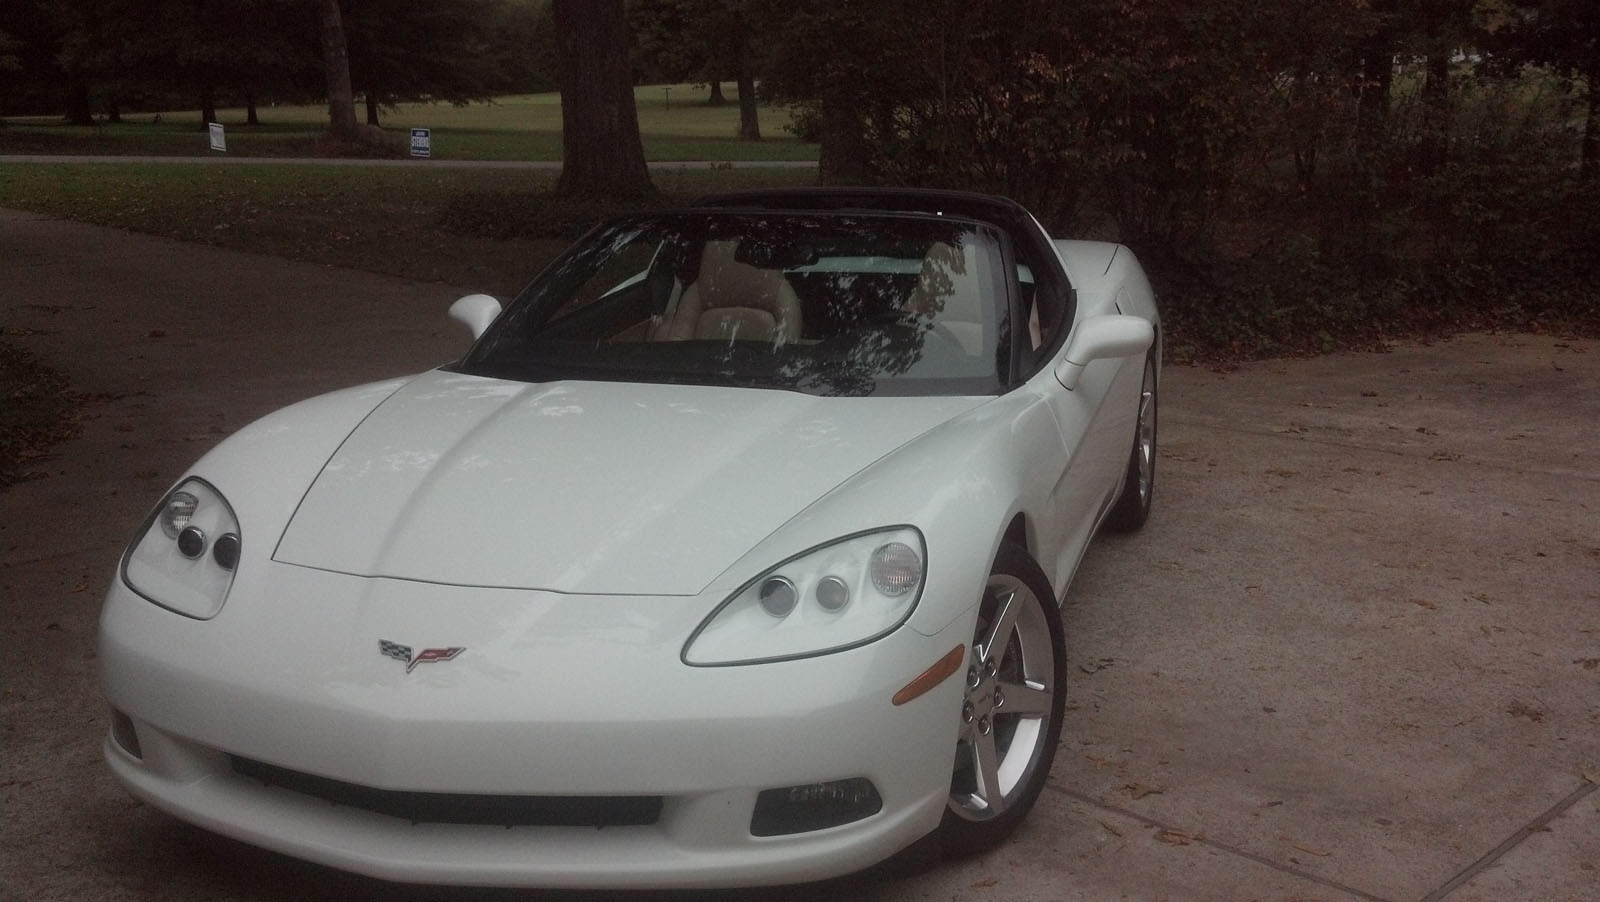 2006 Artic White Chevrolet Corvette Base LS2 400 CI picture, mods, upgrades